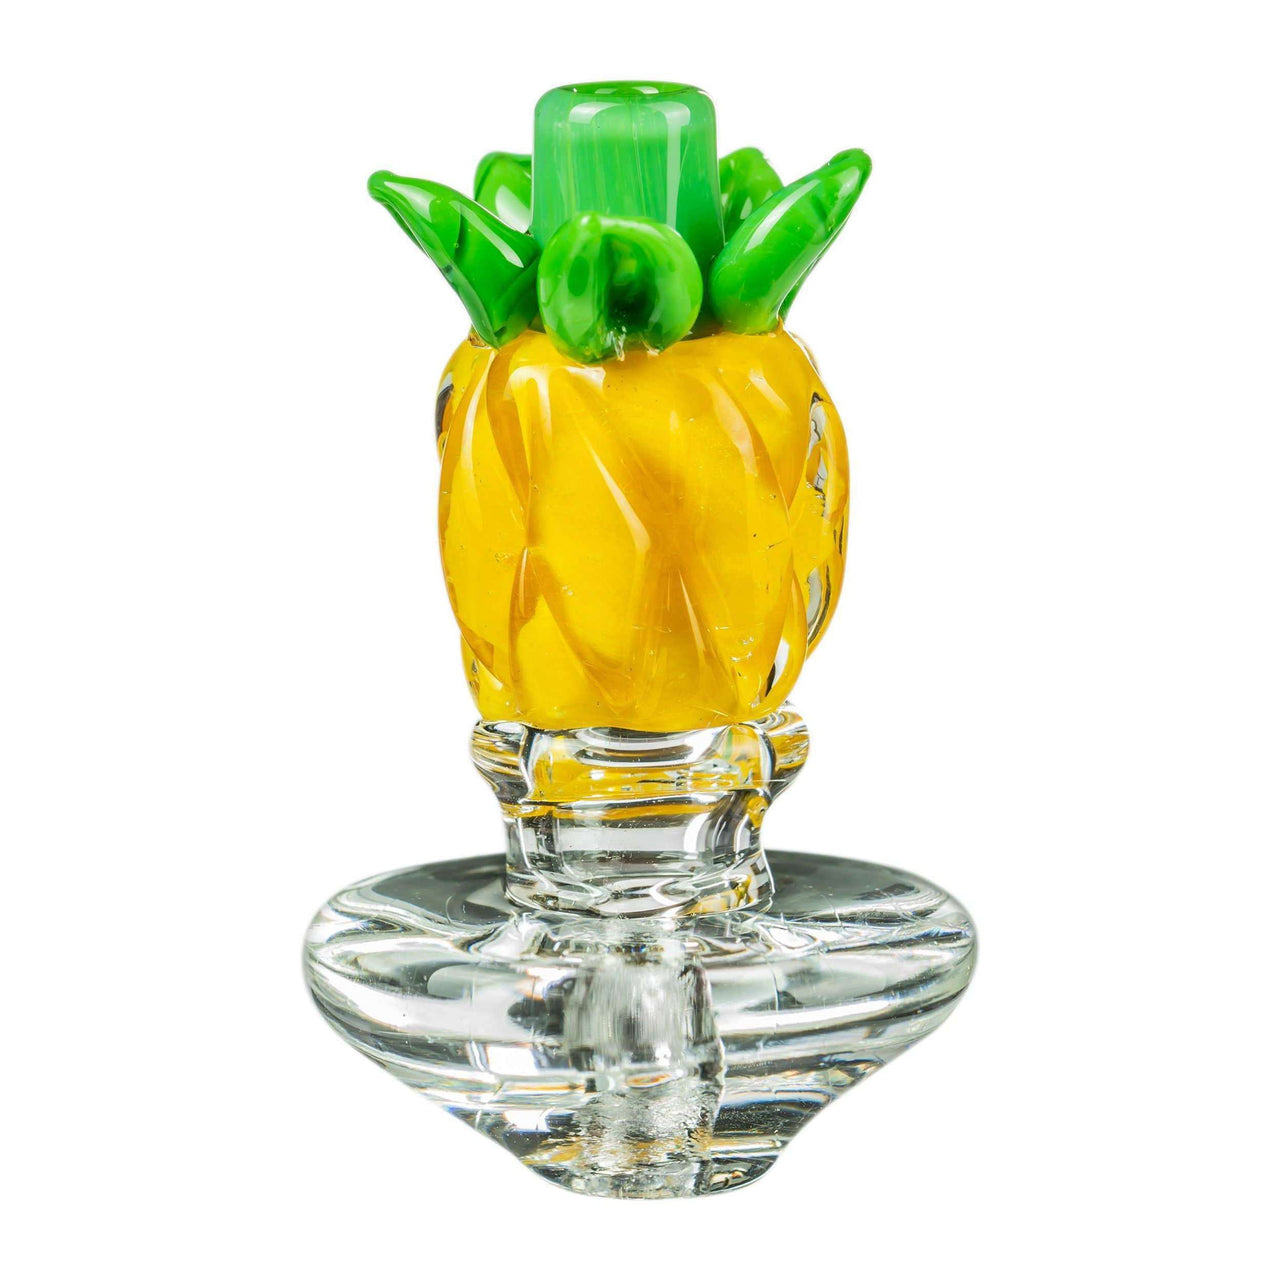 Empire Glassworks Pineapple Carb Cap for PuffCo Peak | The710Source.com